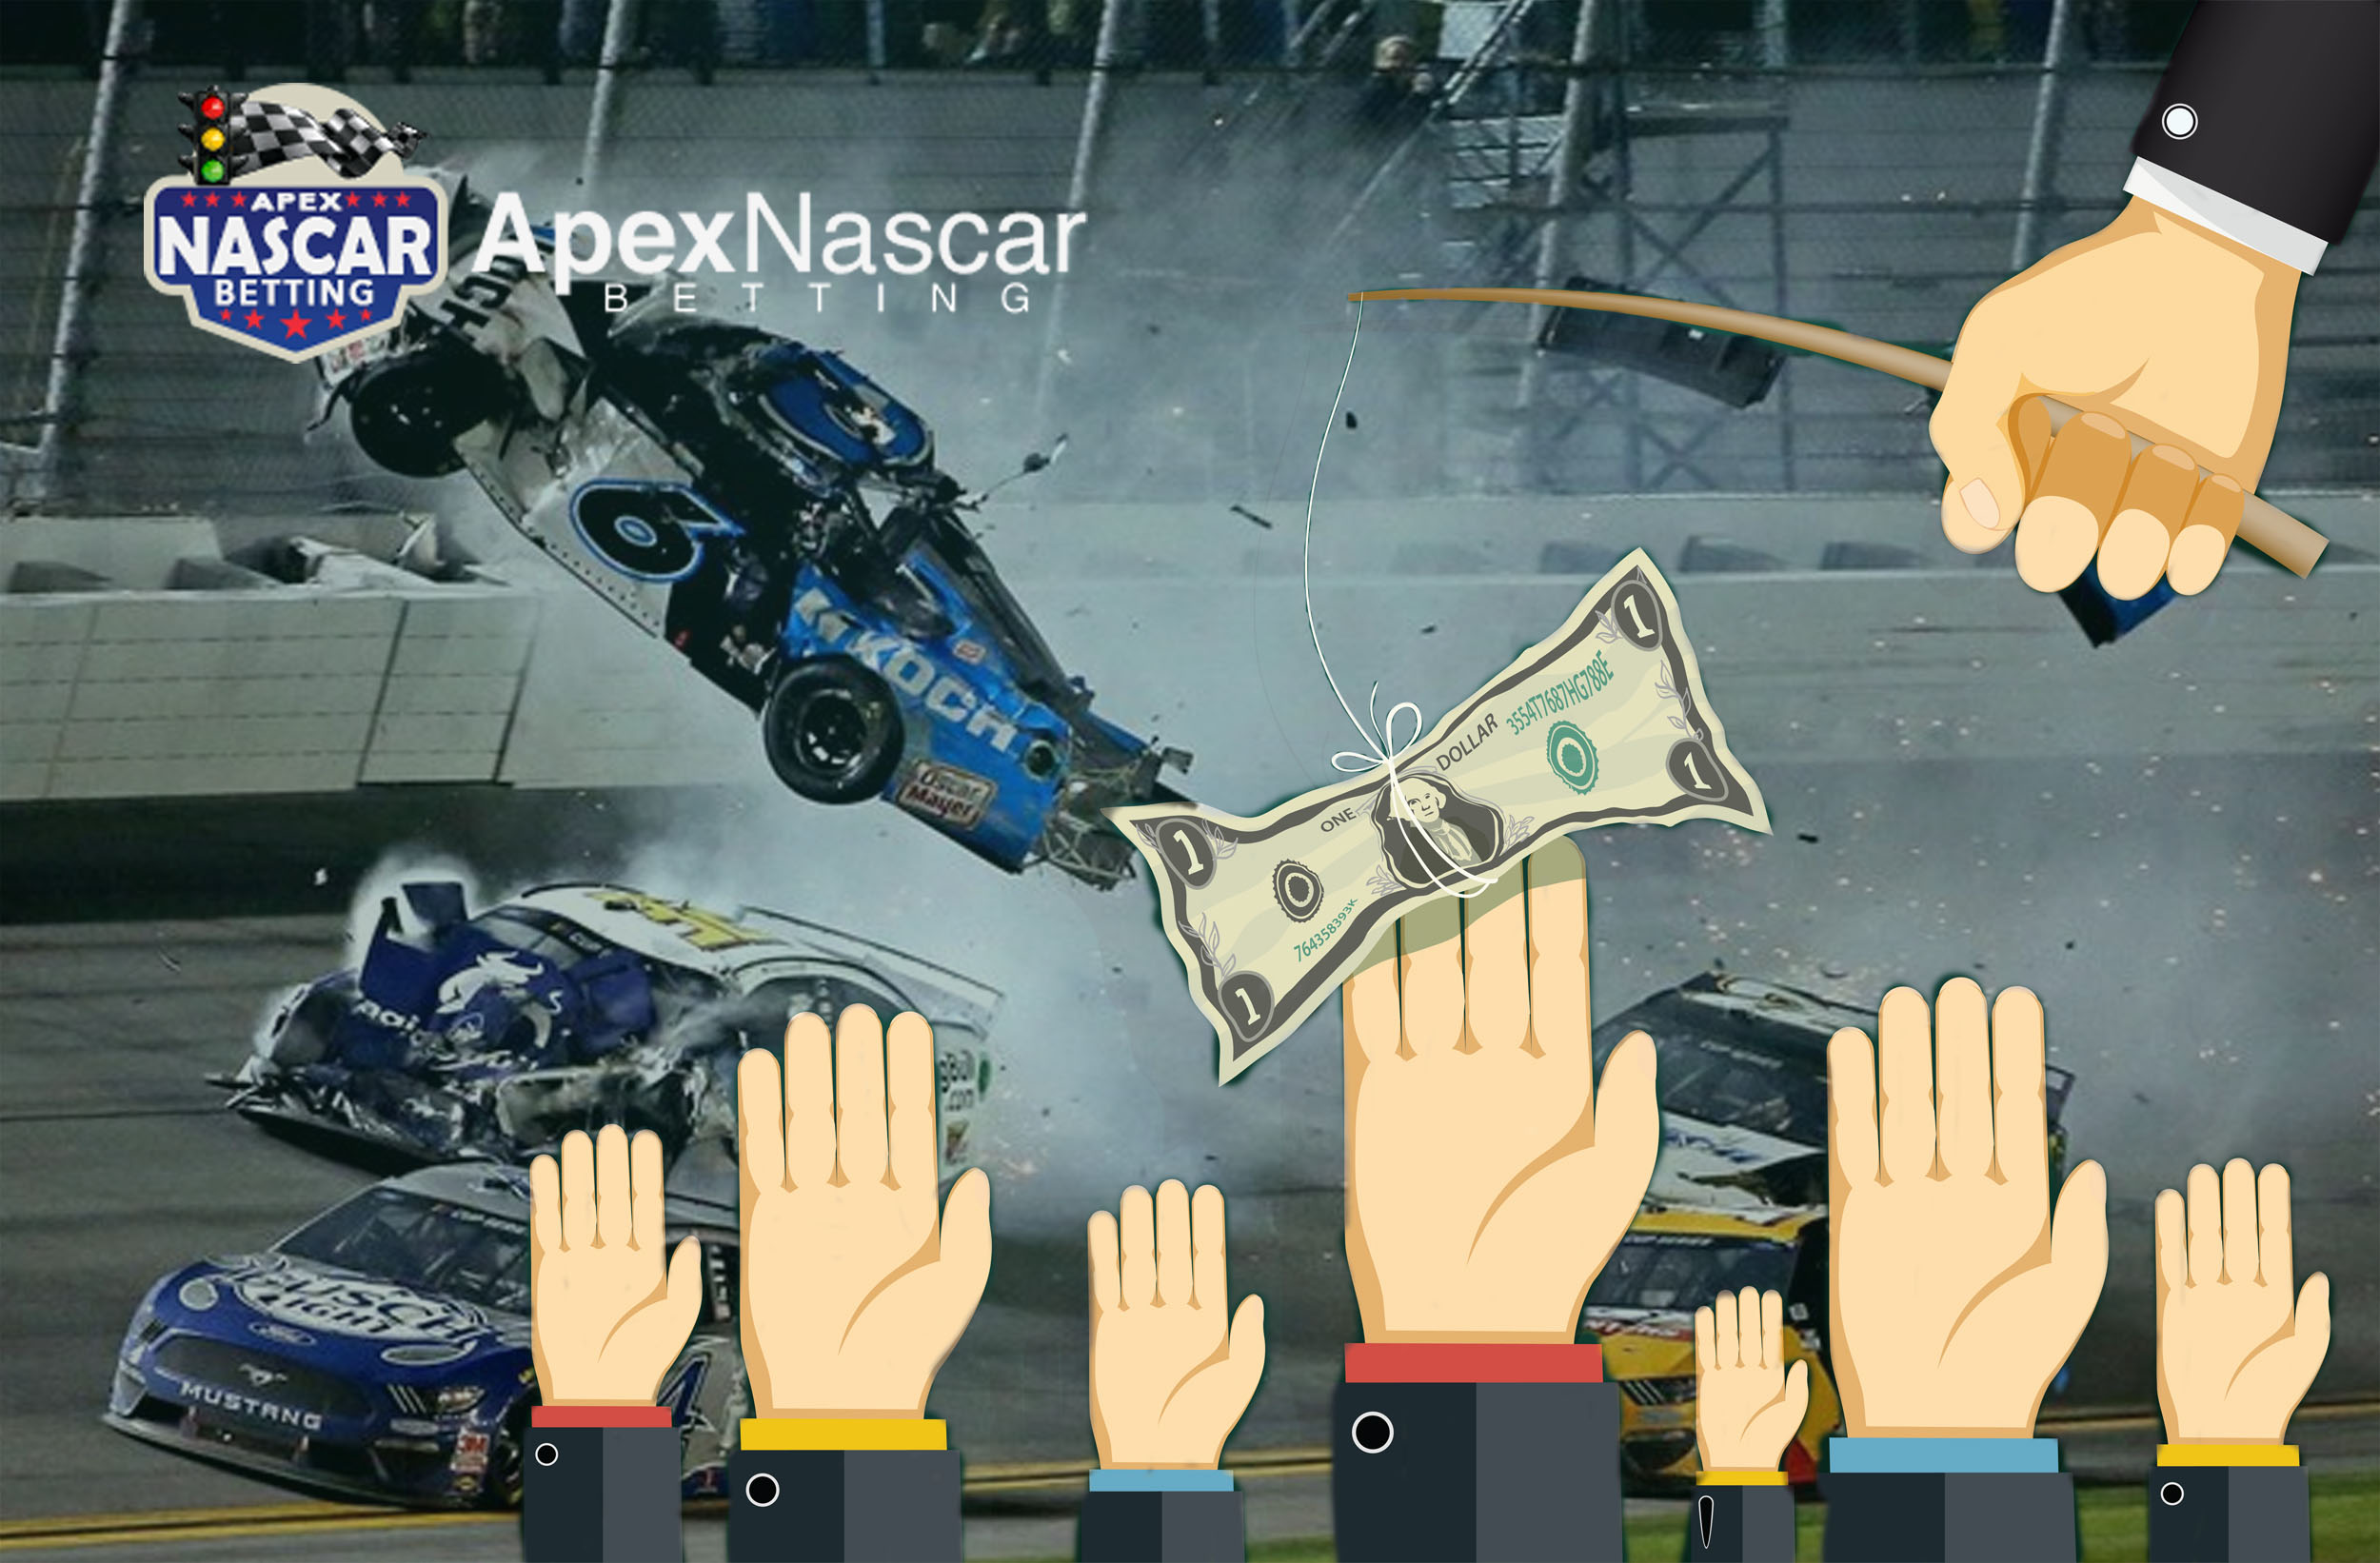 NASCAR Betting -- Potential Pitfalls in Wagering on Drivers